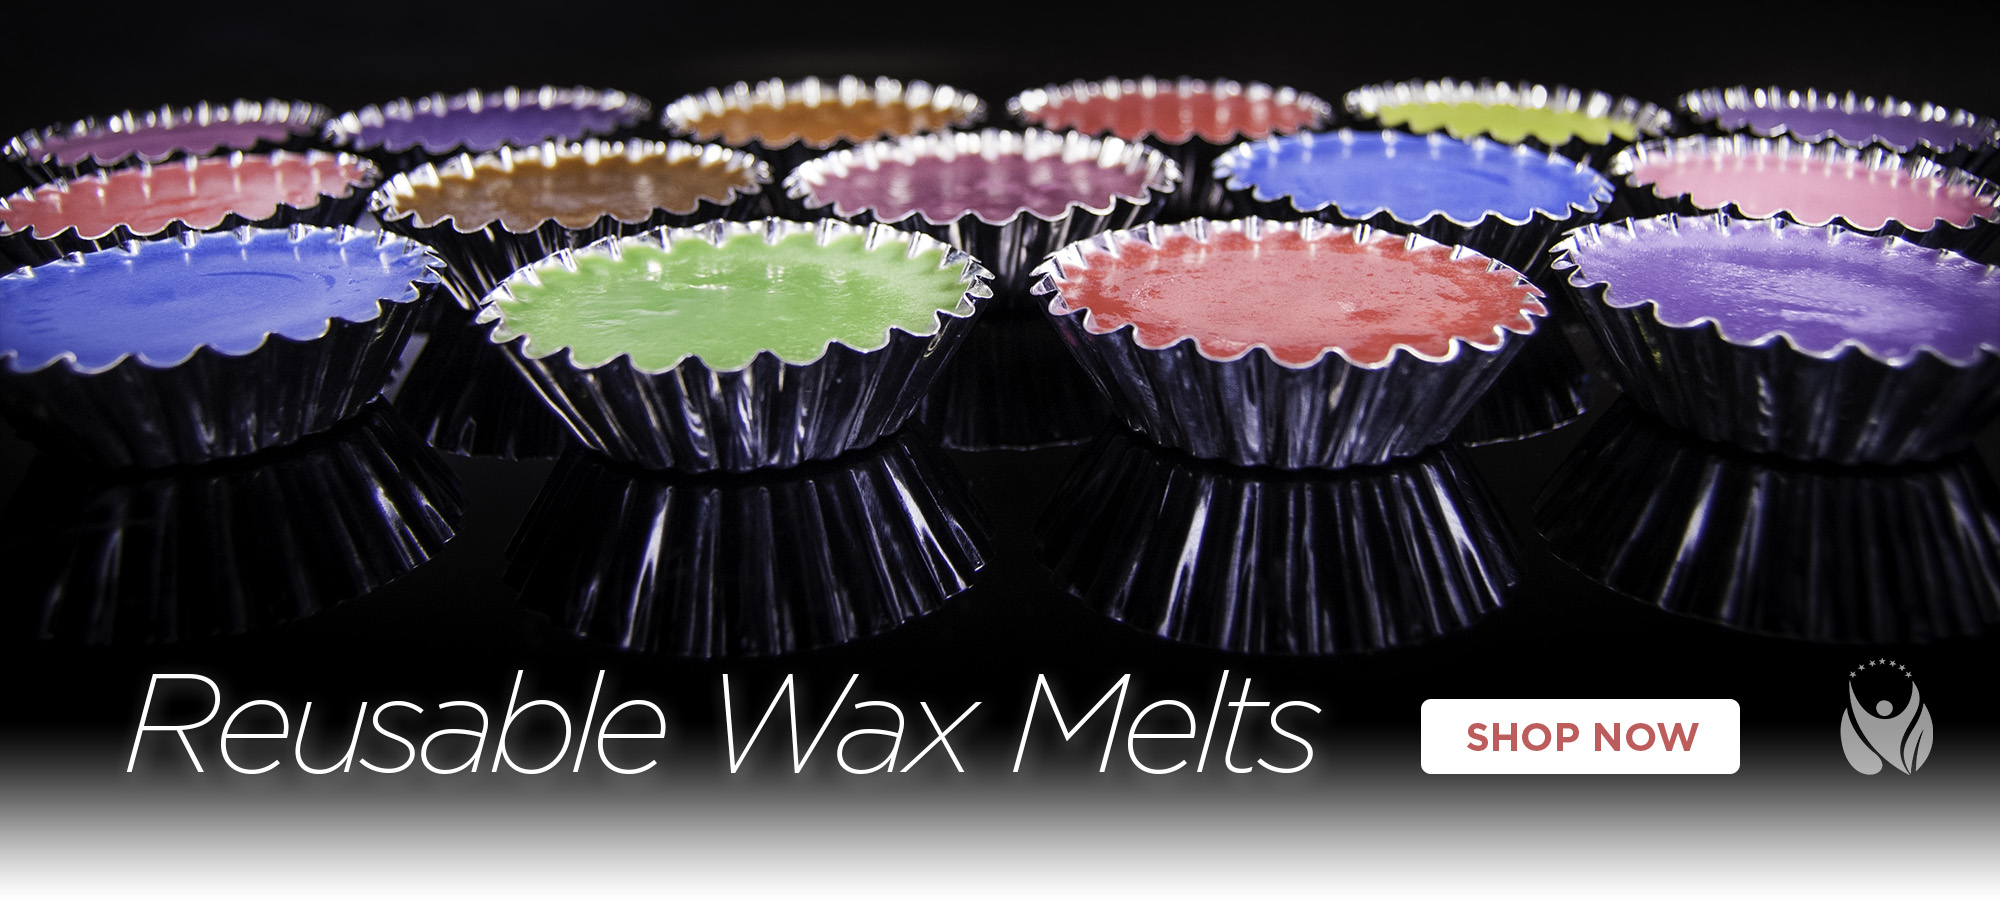 /store/ritzalife/p/1486:c:175_174/experience/reusable-wax-melts/